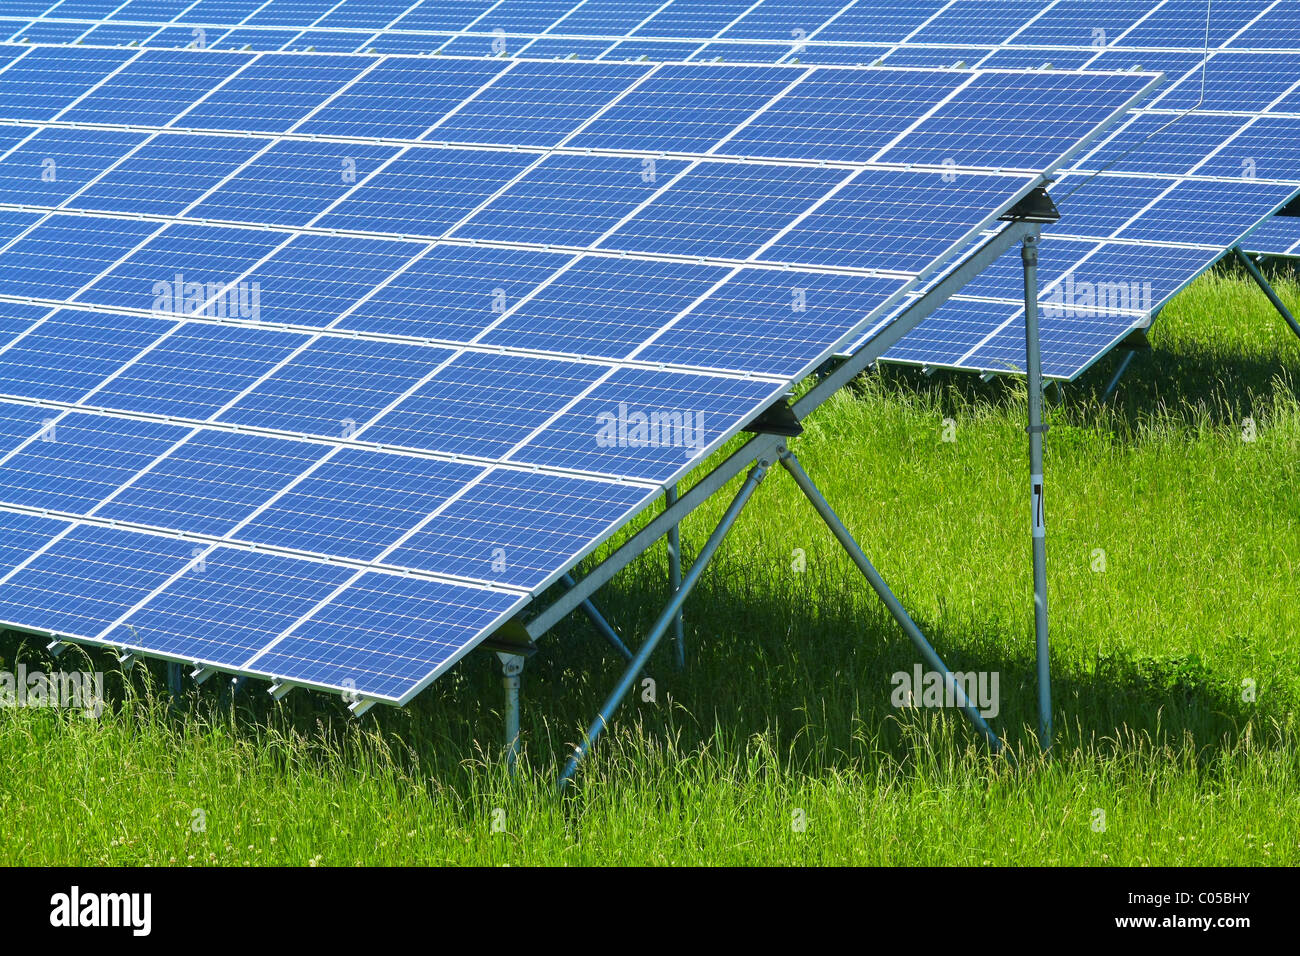 Solar power plant Photo Stock